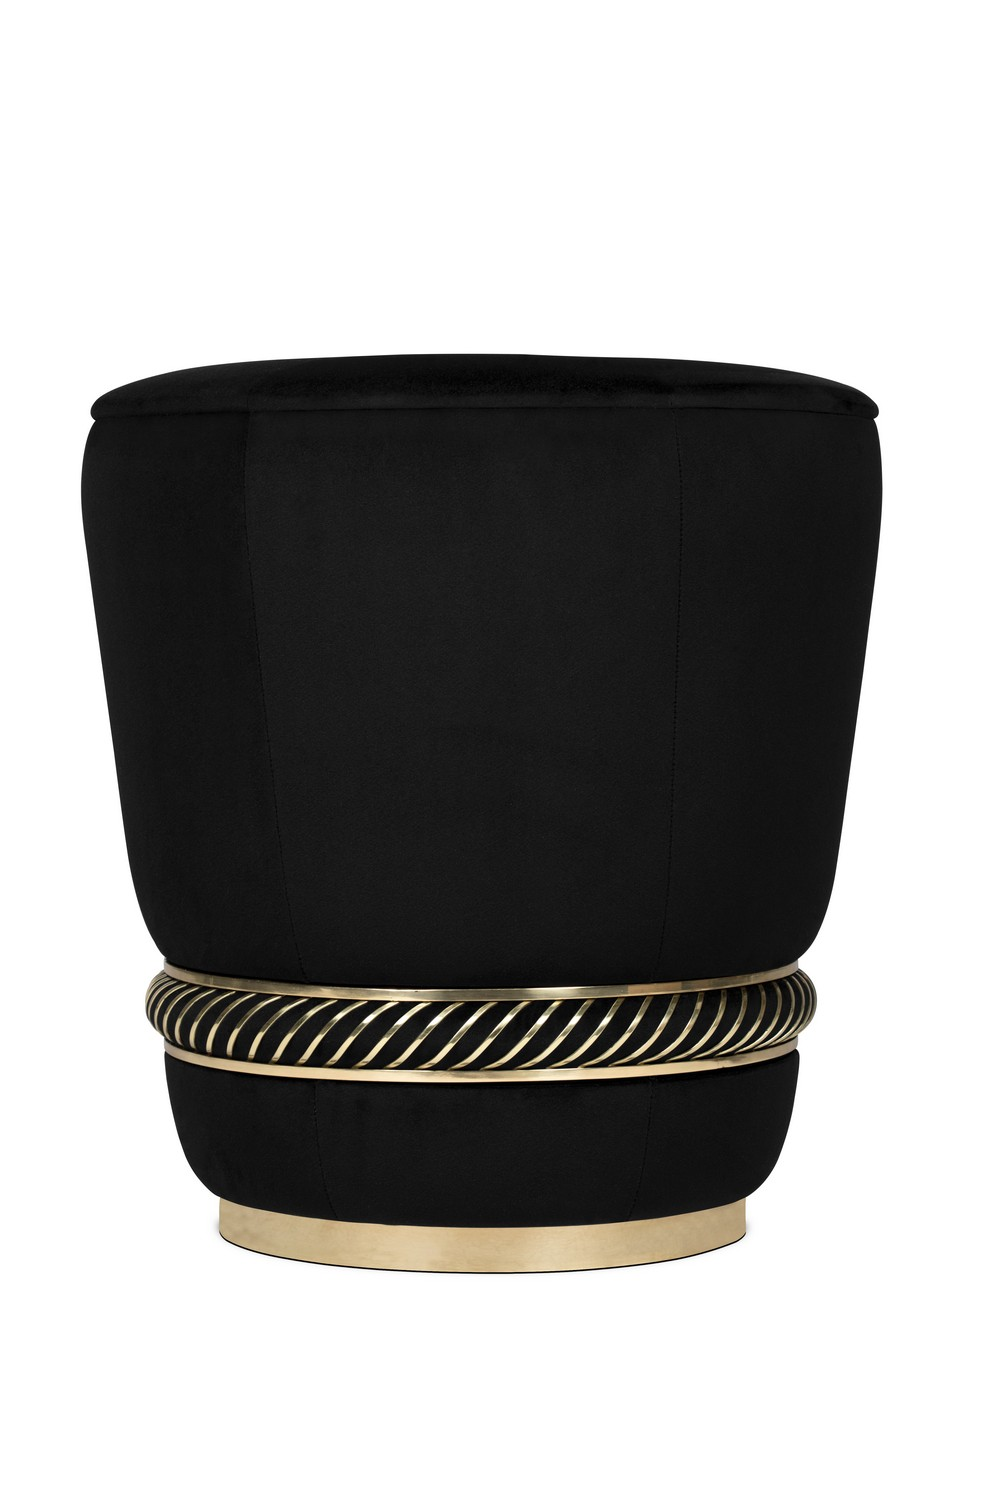 home decoration Home Decoration: Black & Gold Trend Lives on with these Modern Stools Home Decoration Black Gold Trend Lives on with these Modern Stools 7